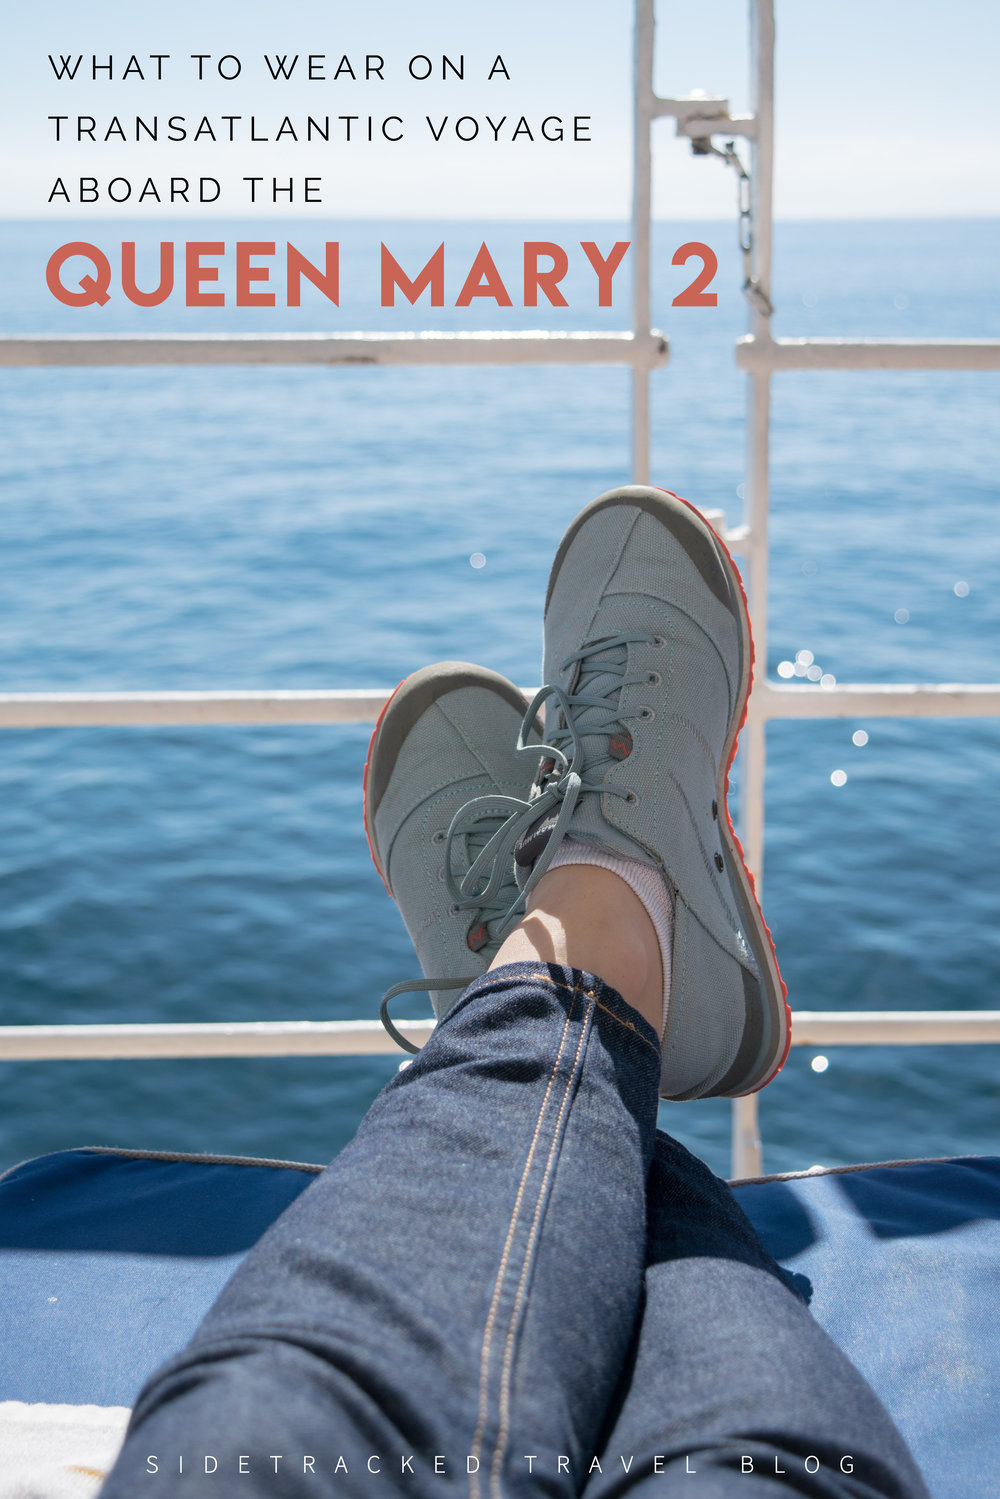 In this article, I share my experience and advice for traveling minimally (and lightly) on board the Queen Mary 2 in the hopes of making your packing process smoother.